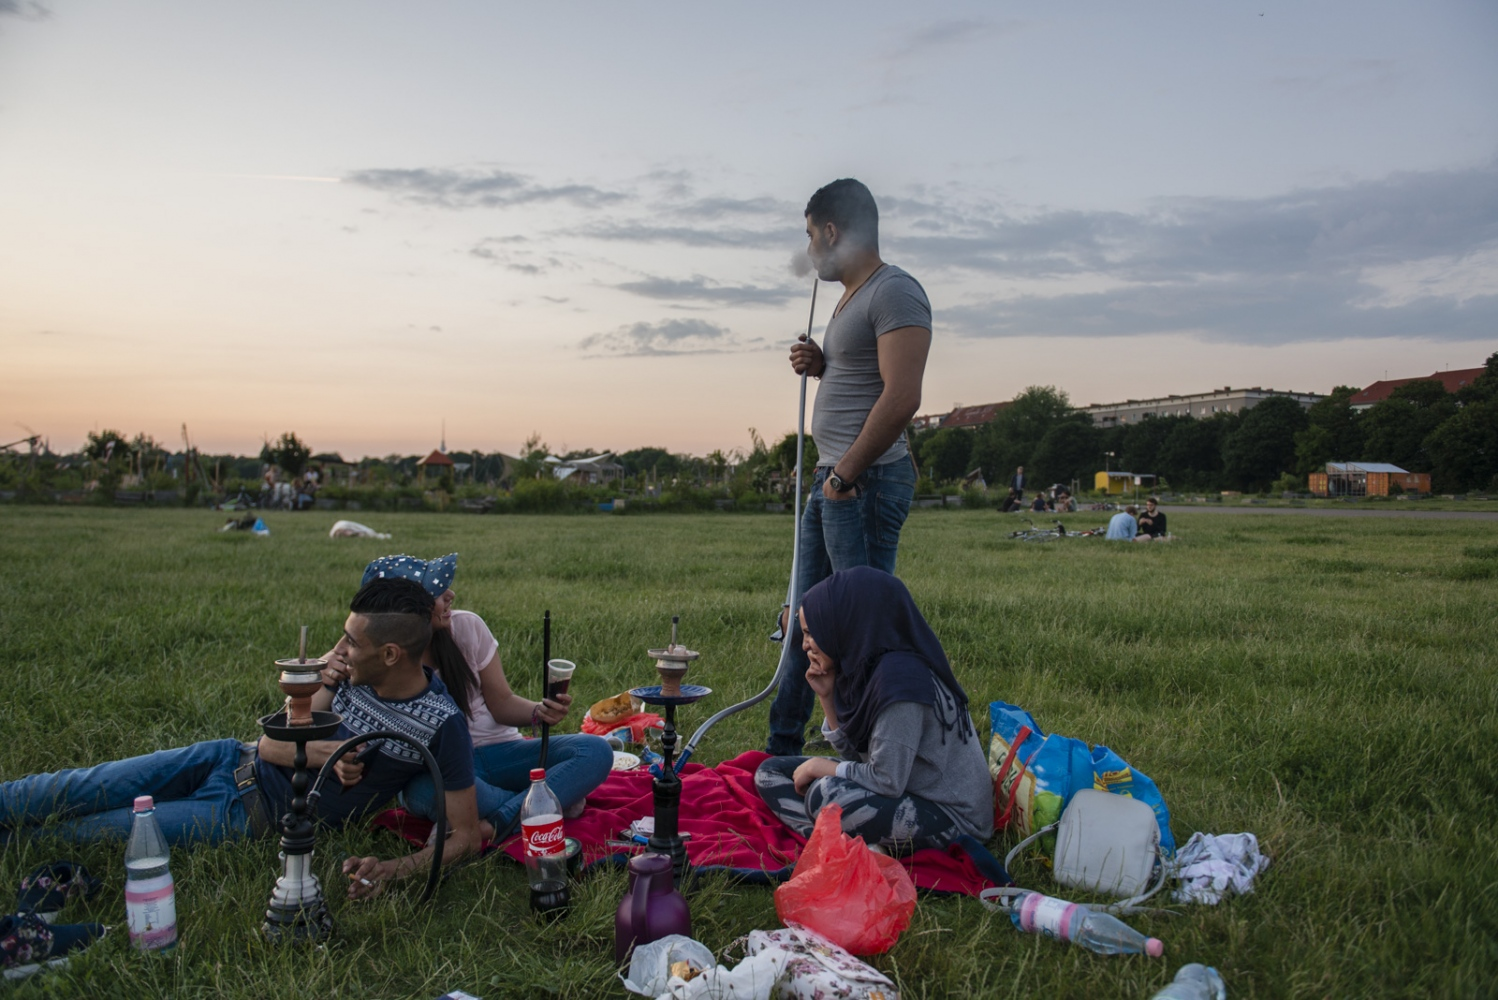 BERLIN | GERMANY | 2016-06-06 | Two Syrian couple spend their Sunday afternoon picnicking in Tempelhof, a vast great area that used to be the largest airport in europe during WWII. The space now hosts families and young people on warm days while one of the largest refugee camps in Berlin remains in the buildings of the airport.